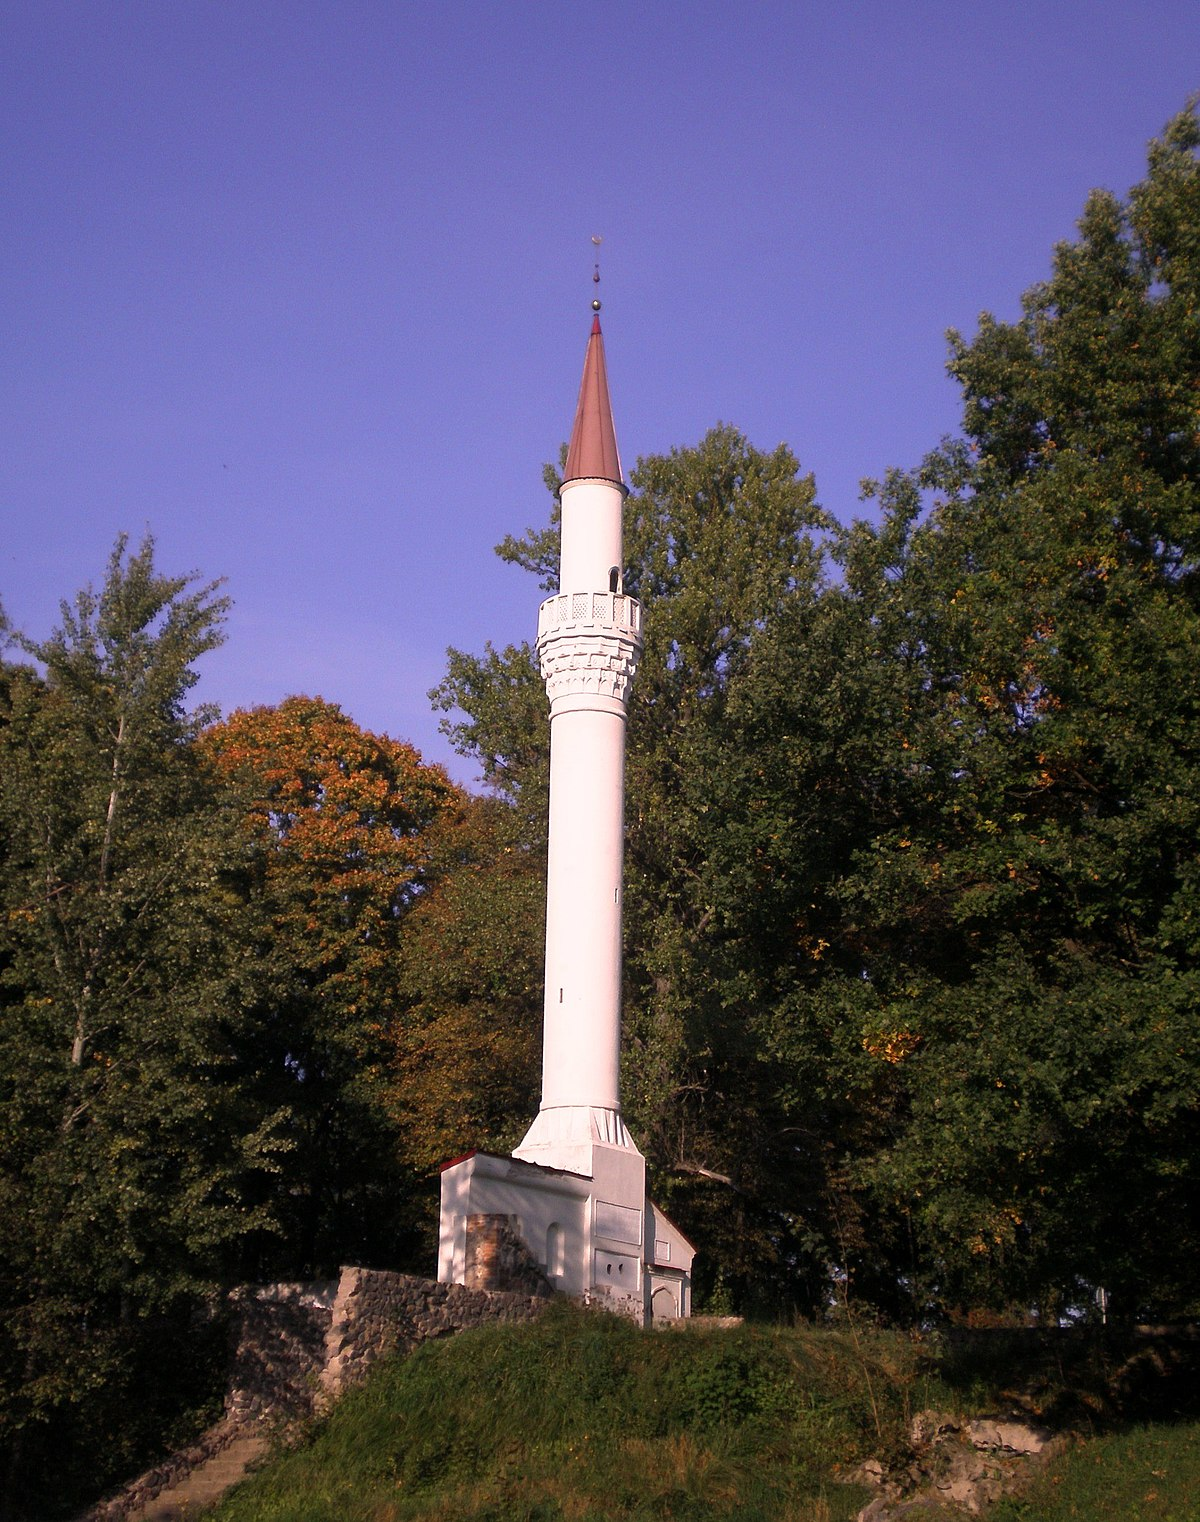 kedainiai muslim The kėdainiai minaret is the only free-standing minaret in lithuaniait is located in the city of kėdainiai, in the city park, between the kėdainiai train station and the dotnuvėlė river history the minaret was erected in 1880 by a russian general, eduard totleben, who was the owner of an estate in kėdainiaiit was built to commemorate his service in the.